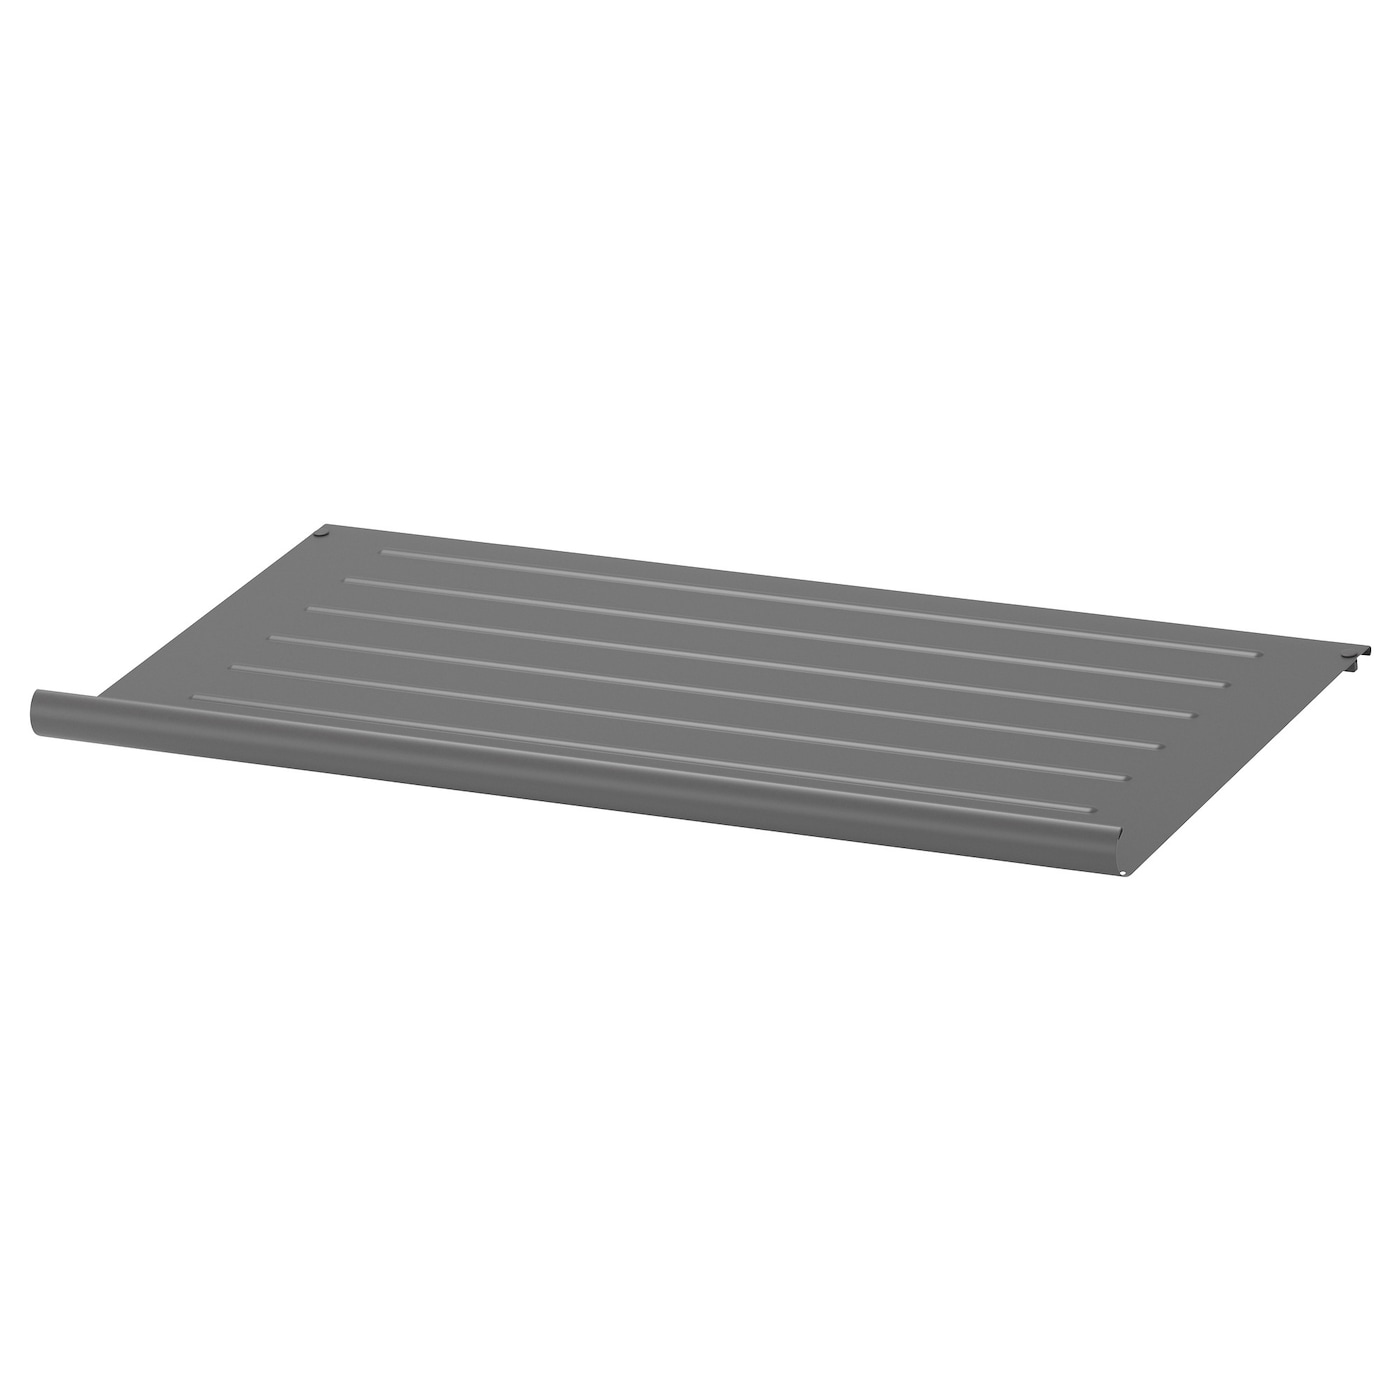 Komplement shoe shelf dark grey 75x35 cm ikea for Ikea complementi